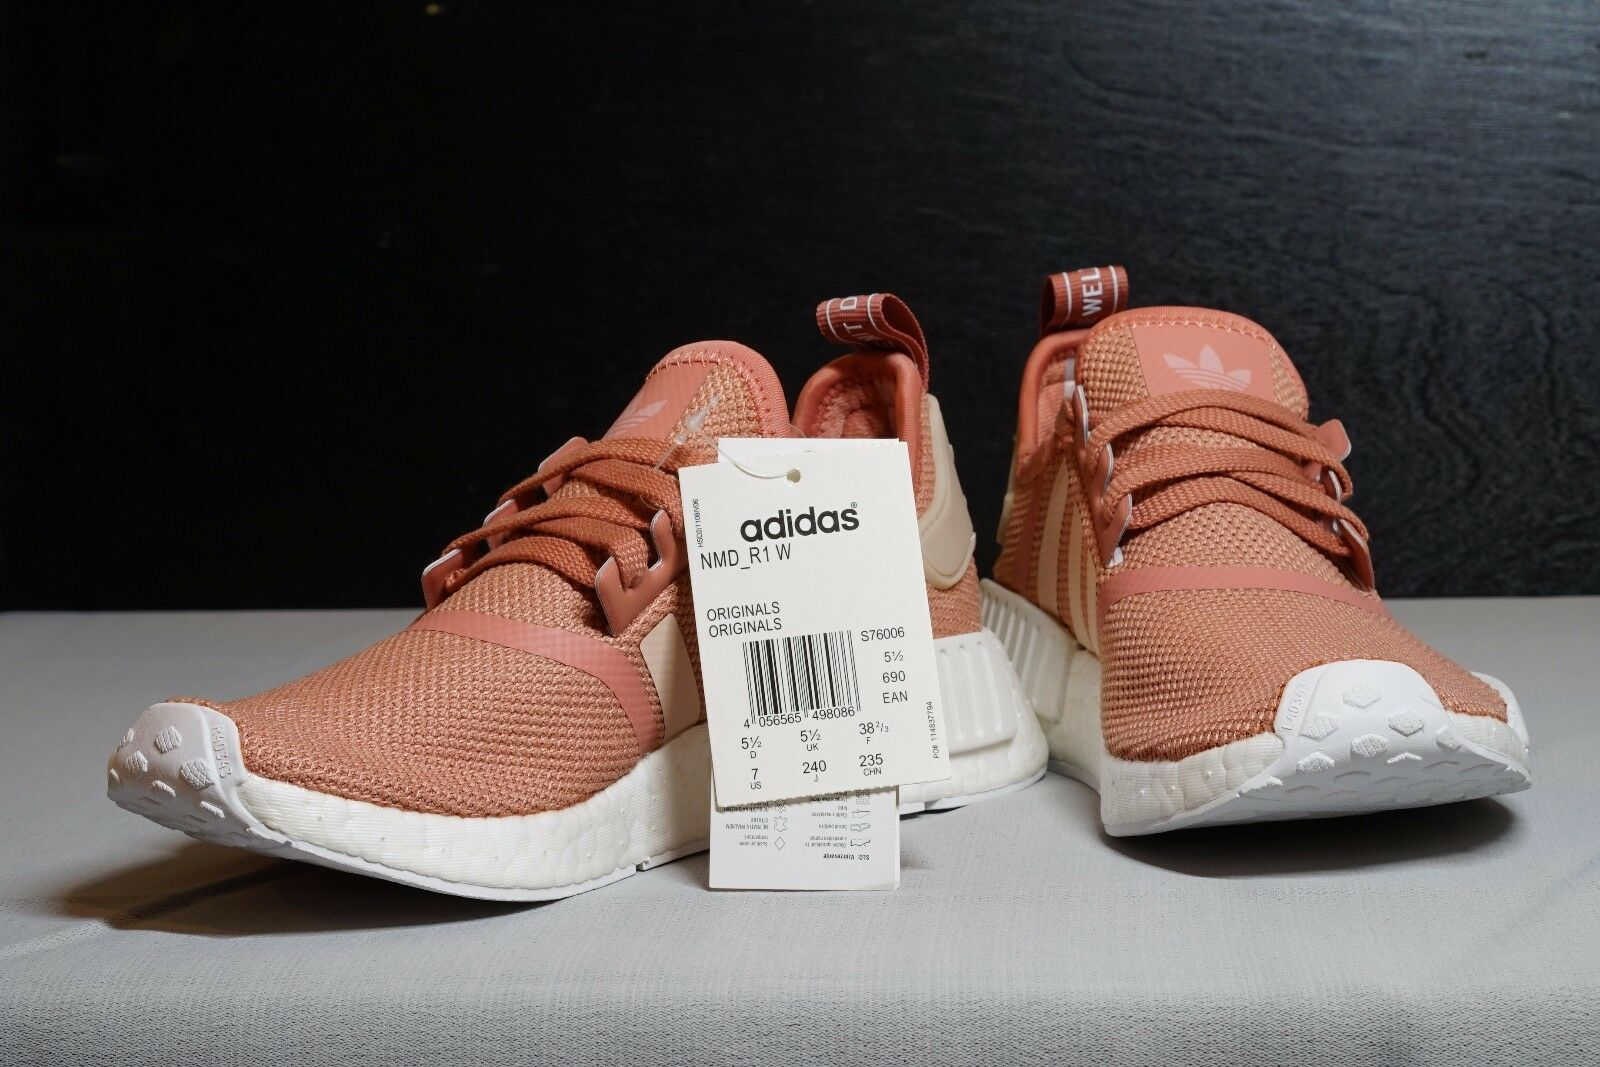 7f760efdfc188 ... ADIDAS NMD NMD NMD R1 Raw Pink Rose Salmon Peach women shoes   USA  SELLER   ...